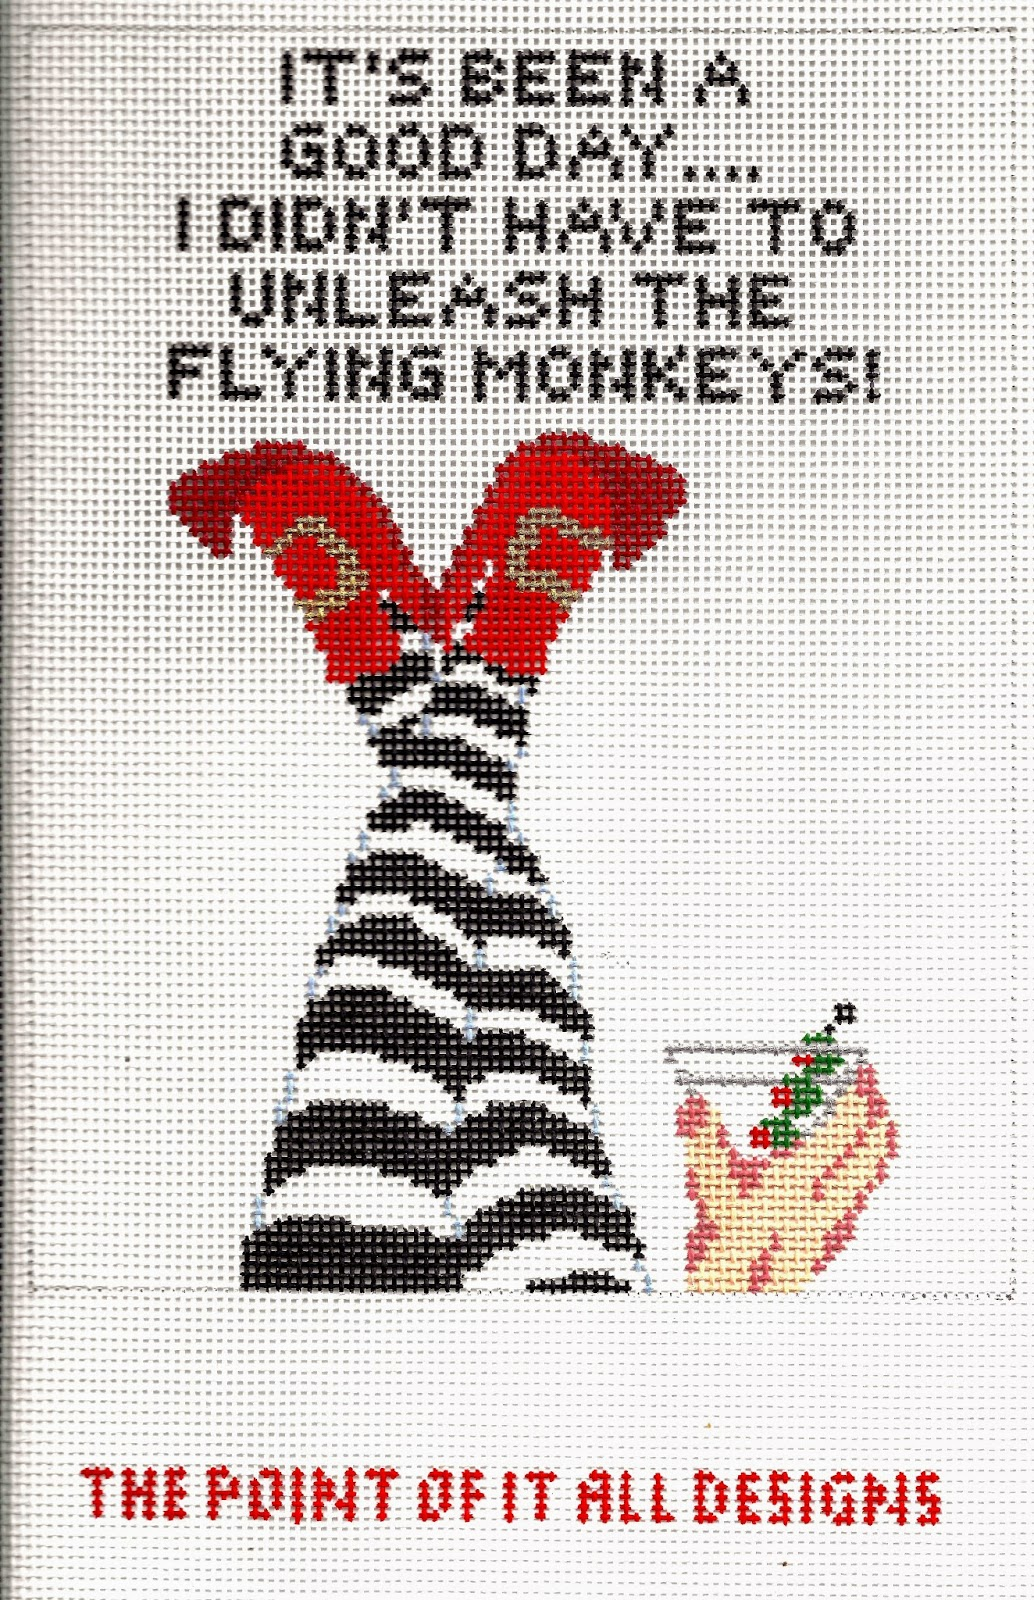 b54264ea9a3 Now that my No Flying Monkeys canvas has been divided into the